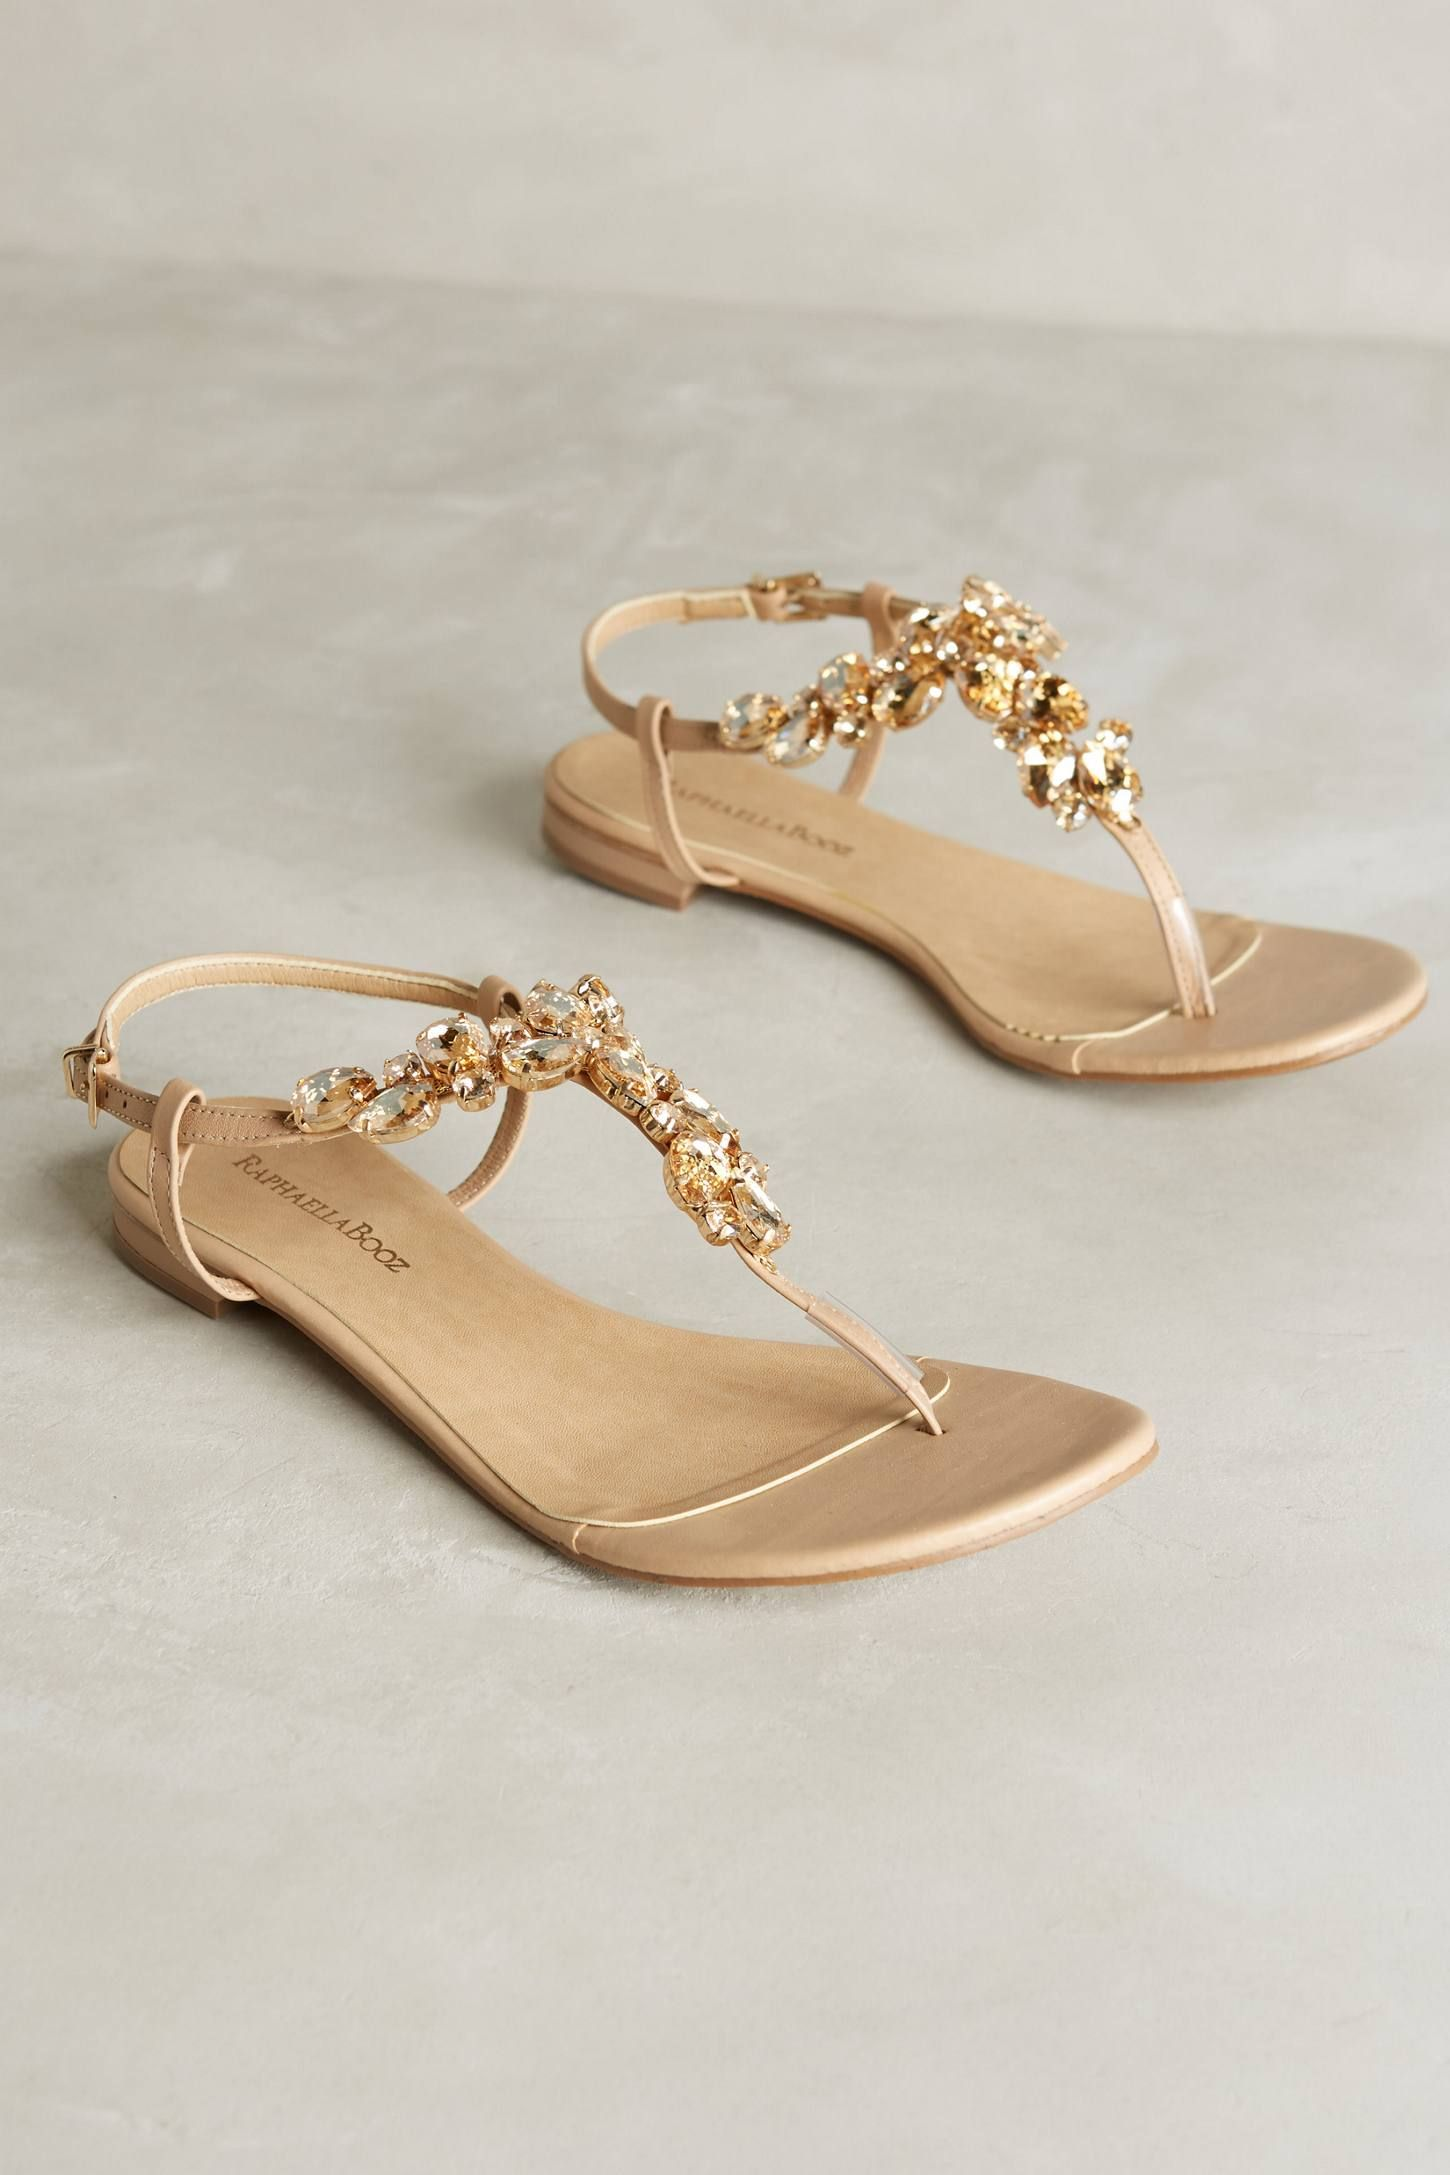 http://www.anthropologie.com/anthro/product/shoes-new/35871755.jsp